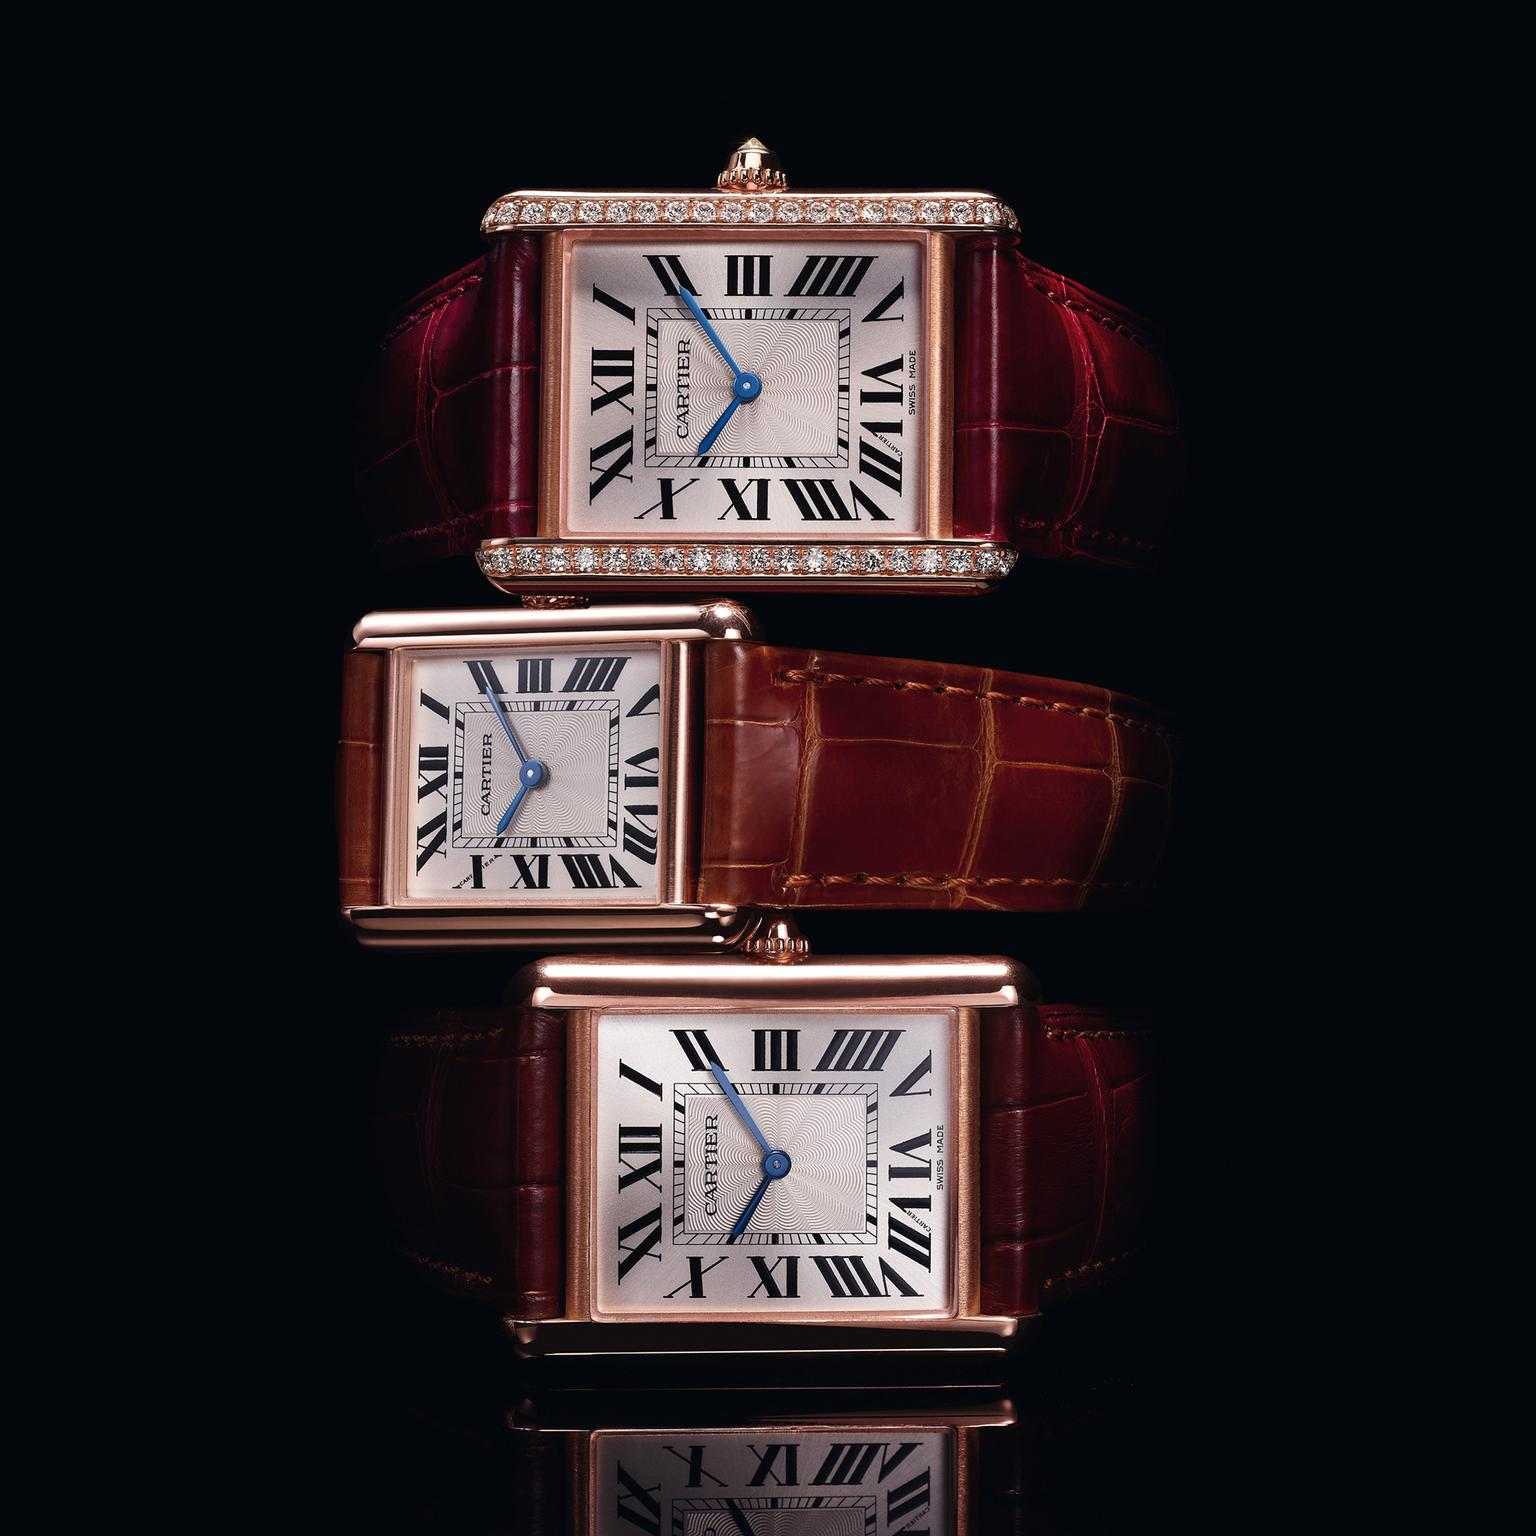 The Tank Louis Cartier is revisited in pink gold cases with the option of diamonds